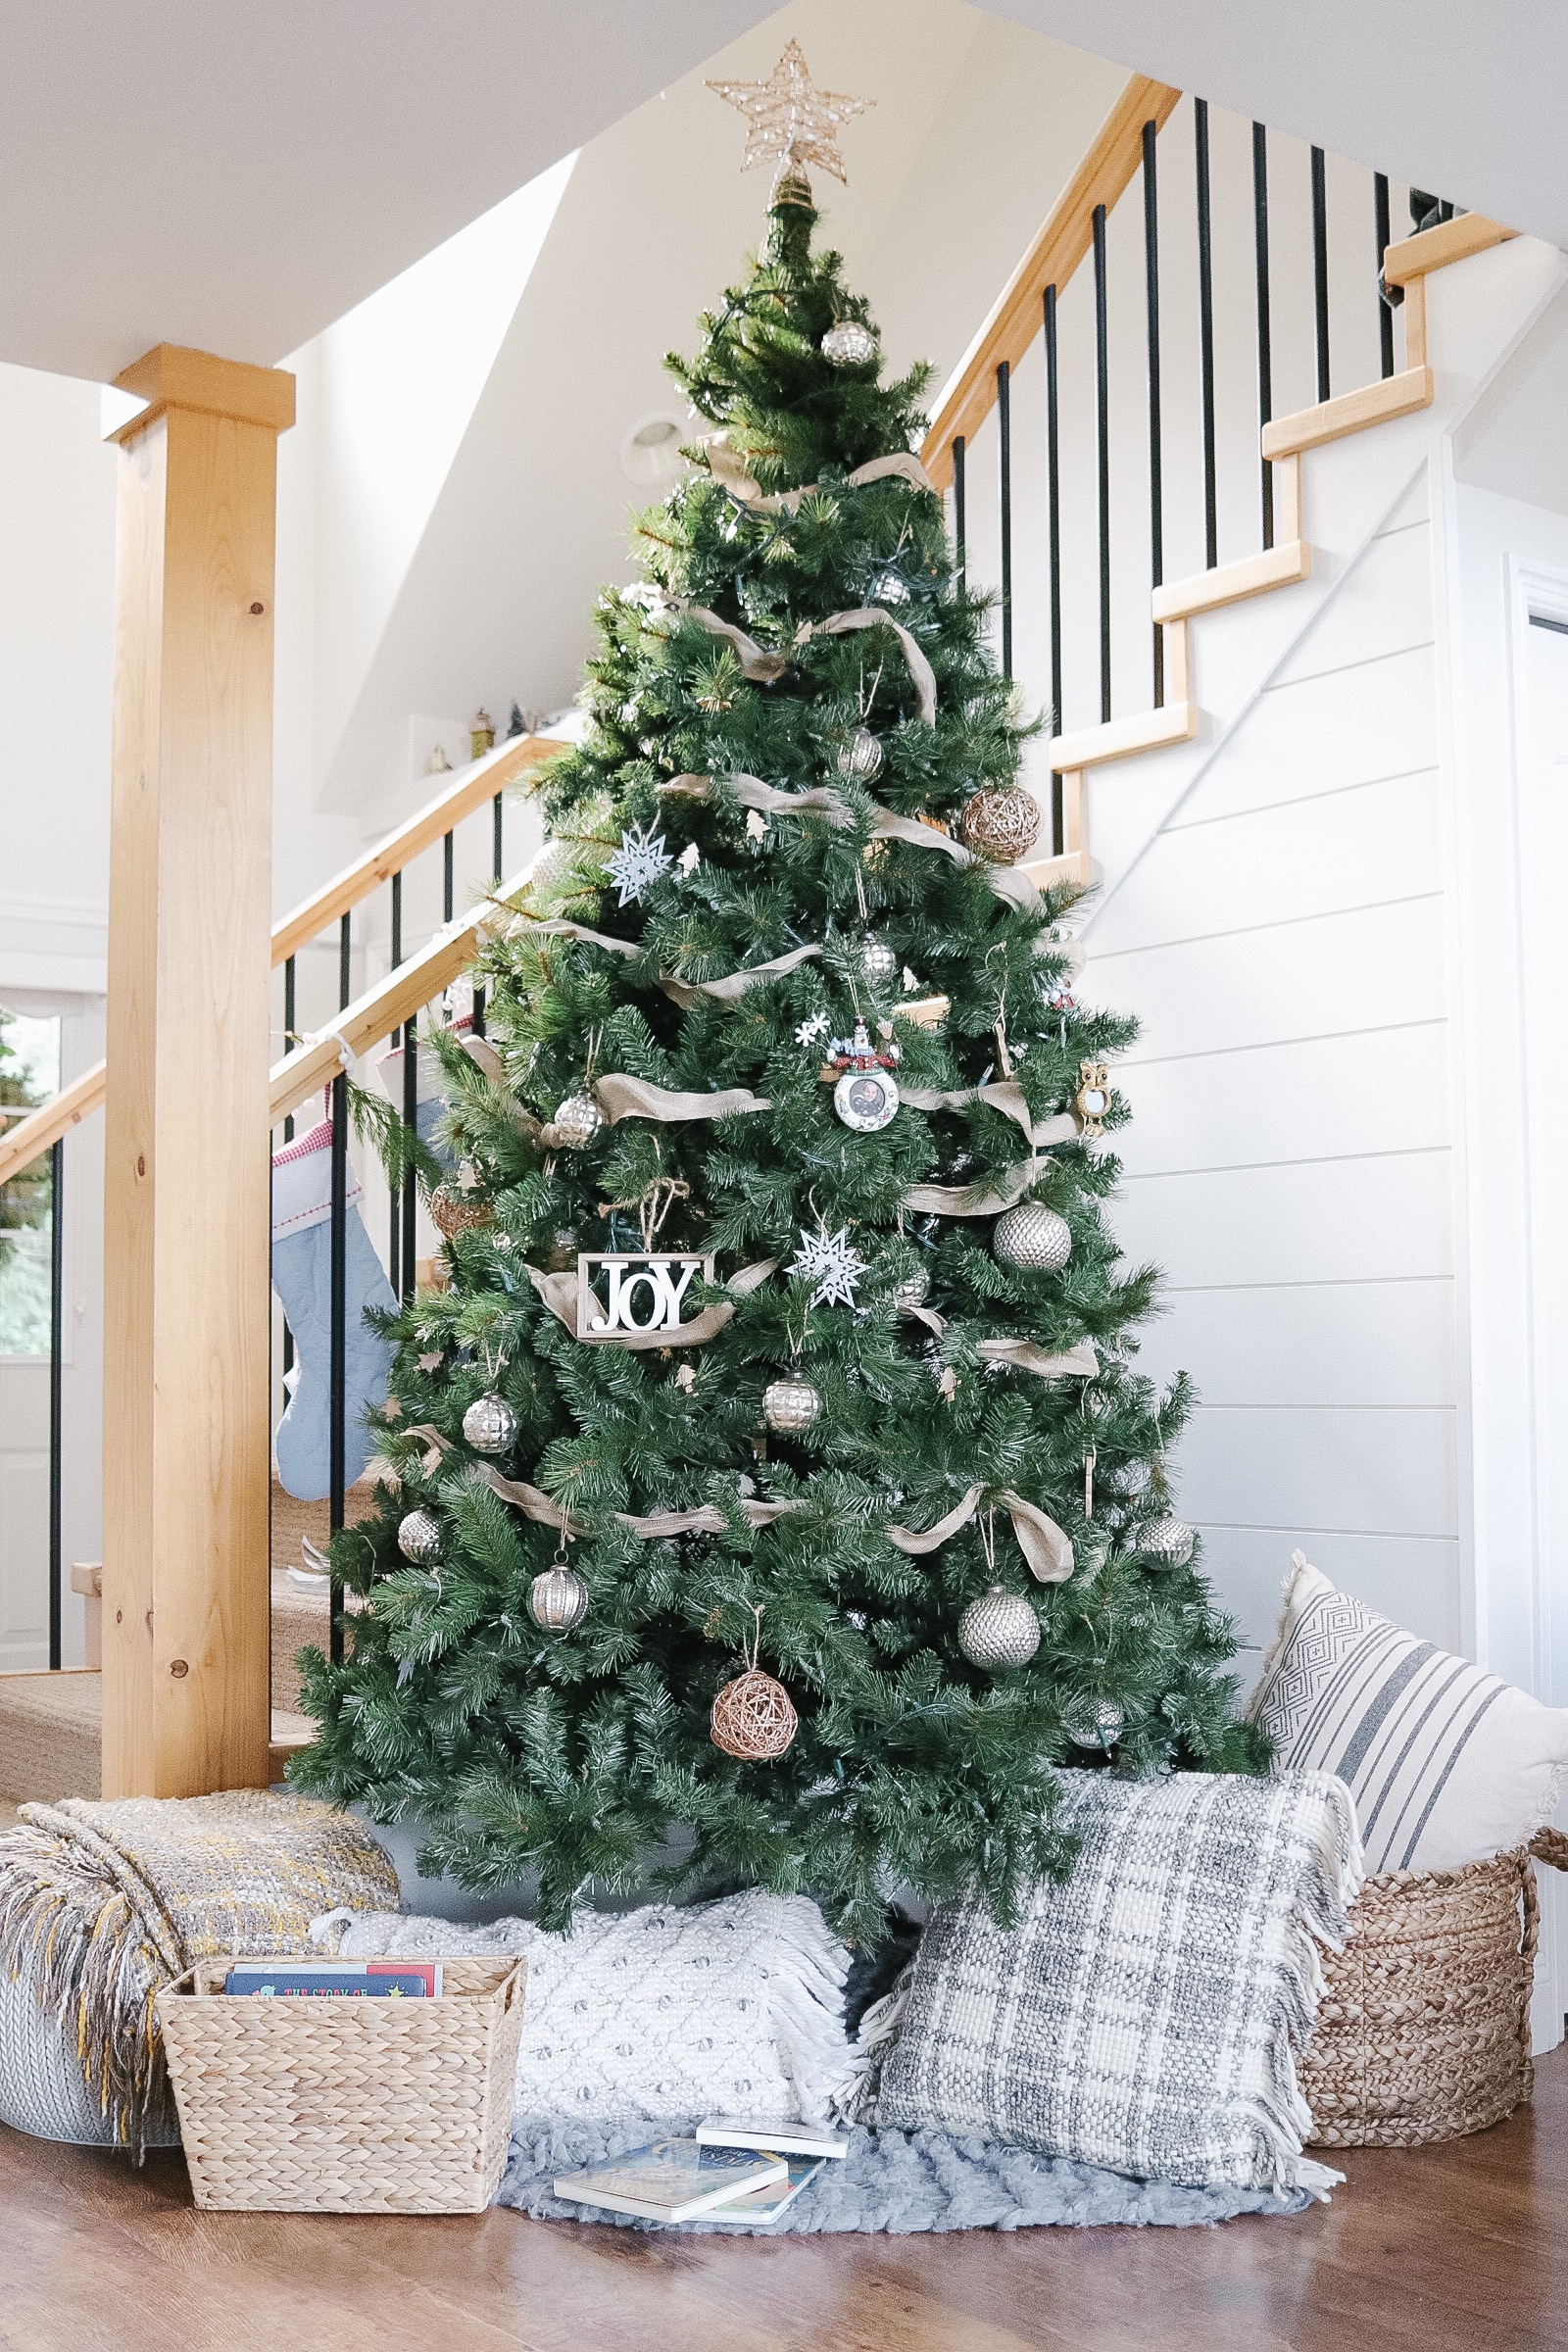 Holiday Home Tour – Simple Christmas Decor Ideas